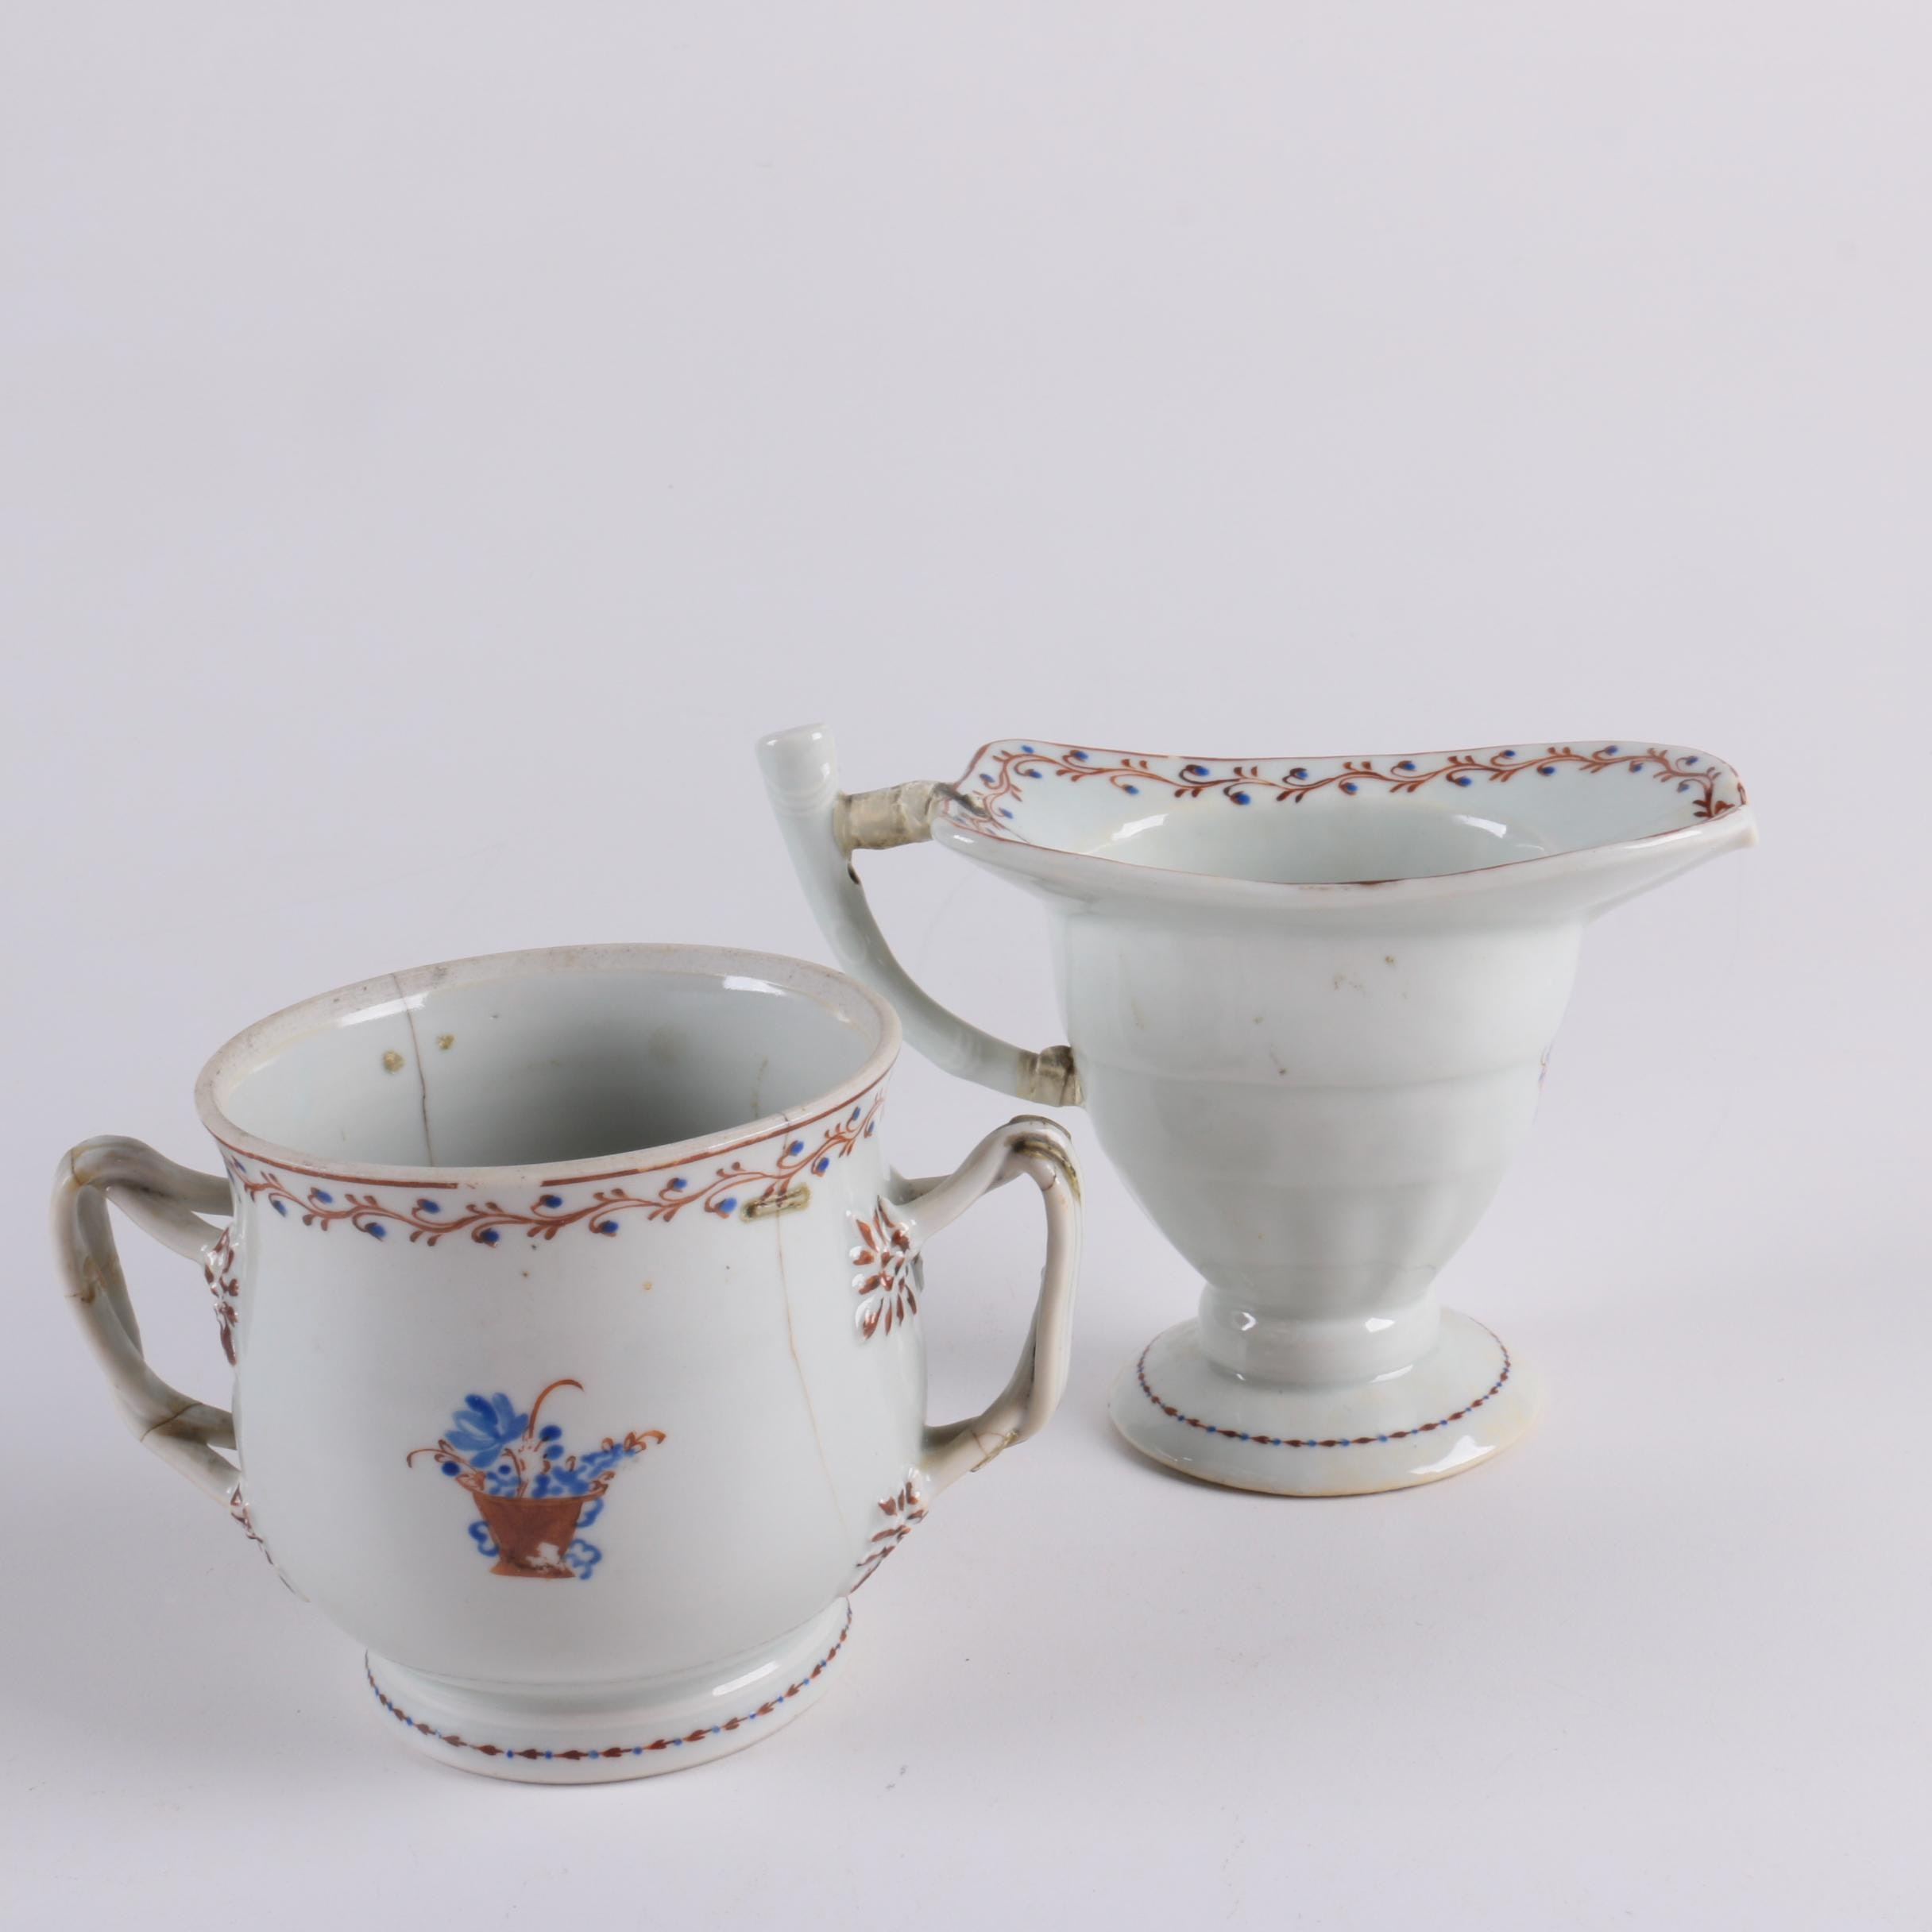 Antique Chinese Export Footed Creamer and Sugar Bowl